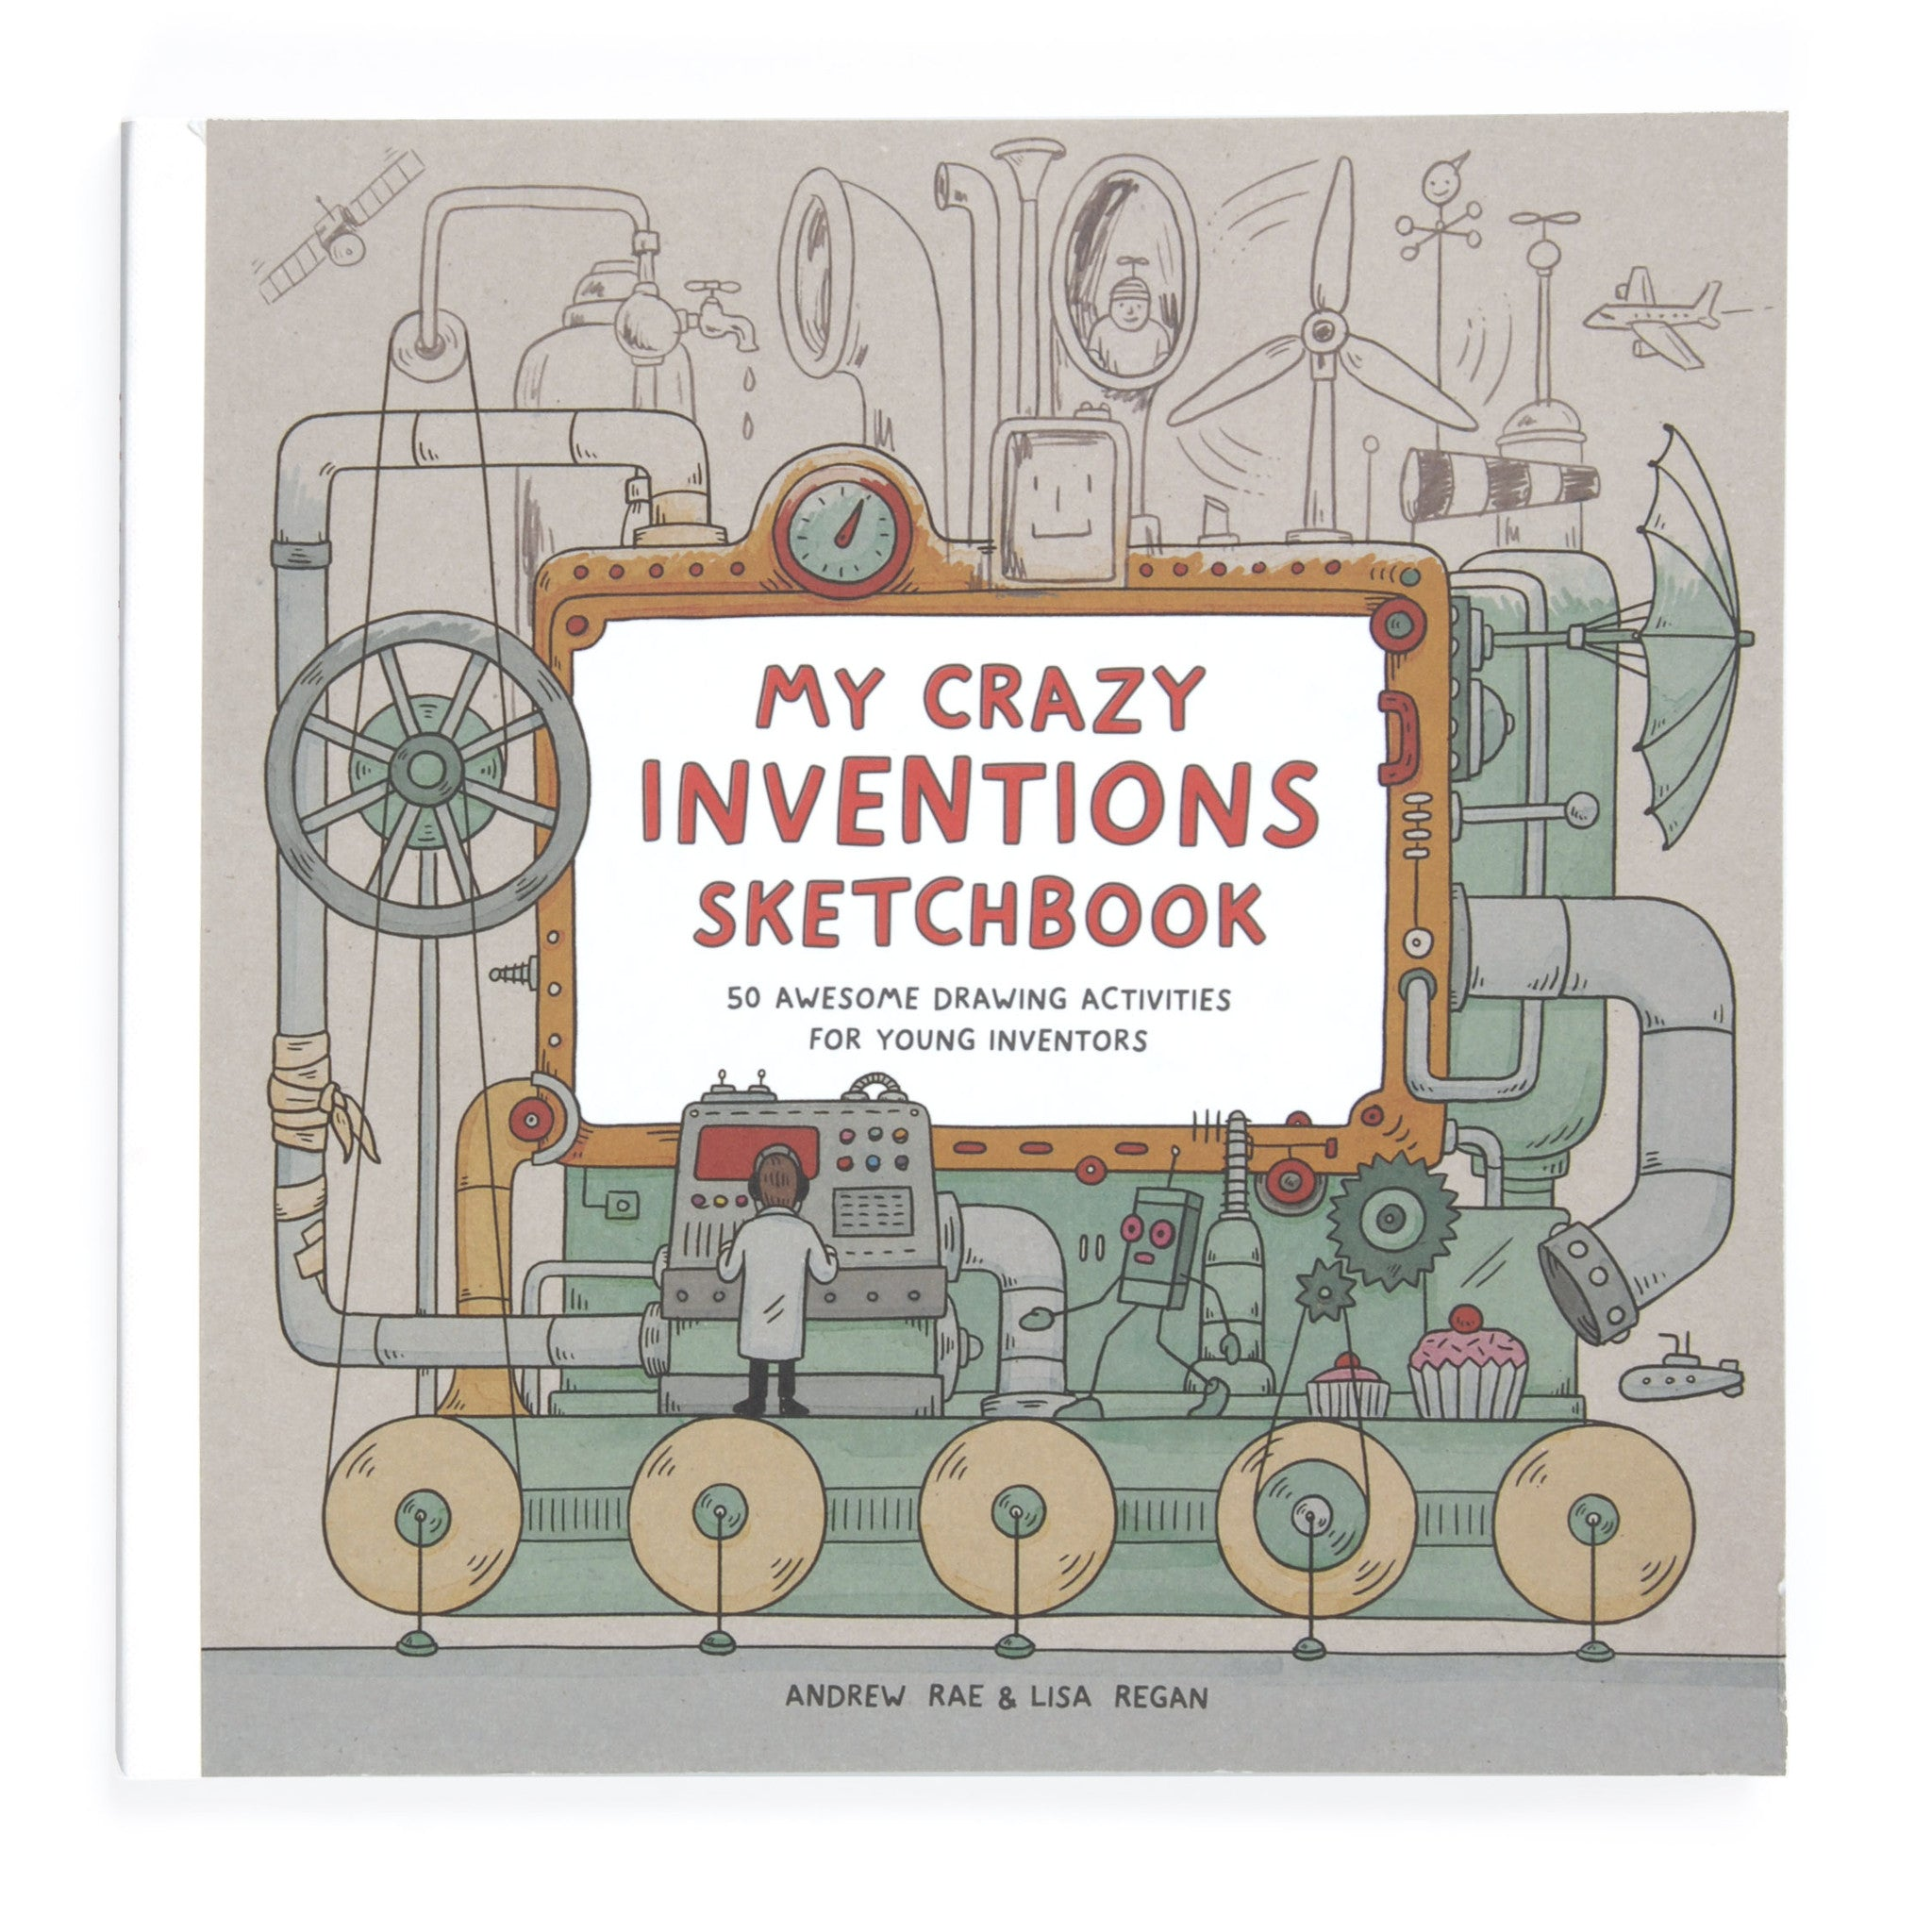 My Crazy Inventions Sketchbook Image